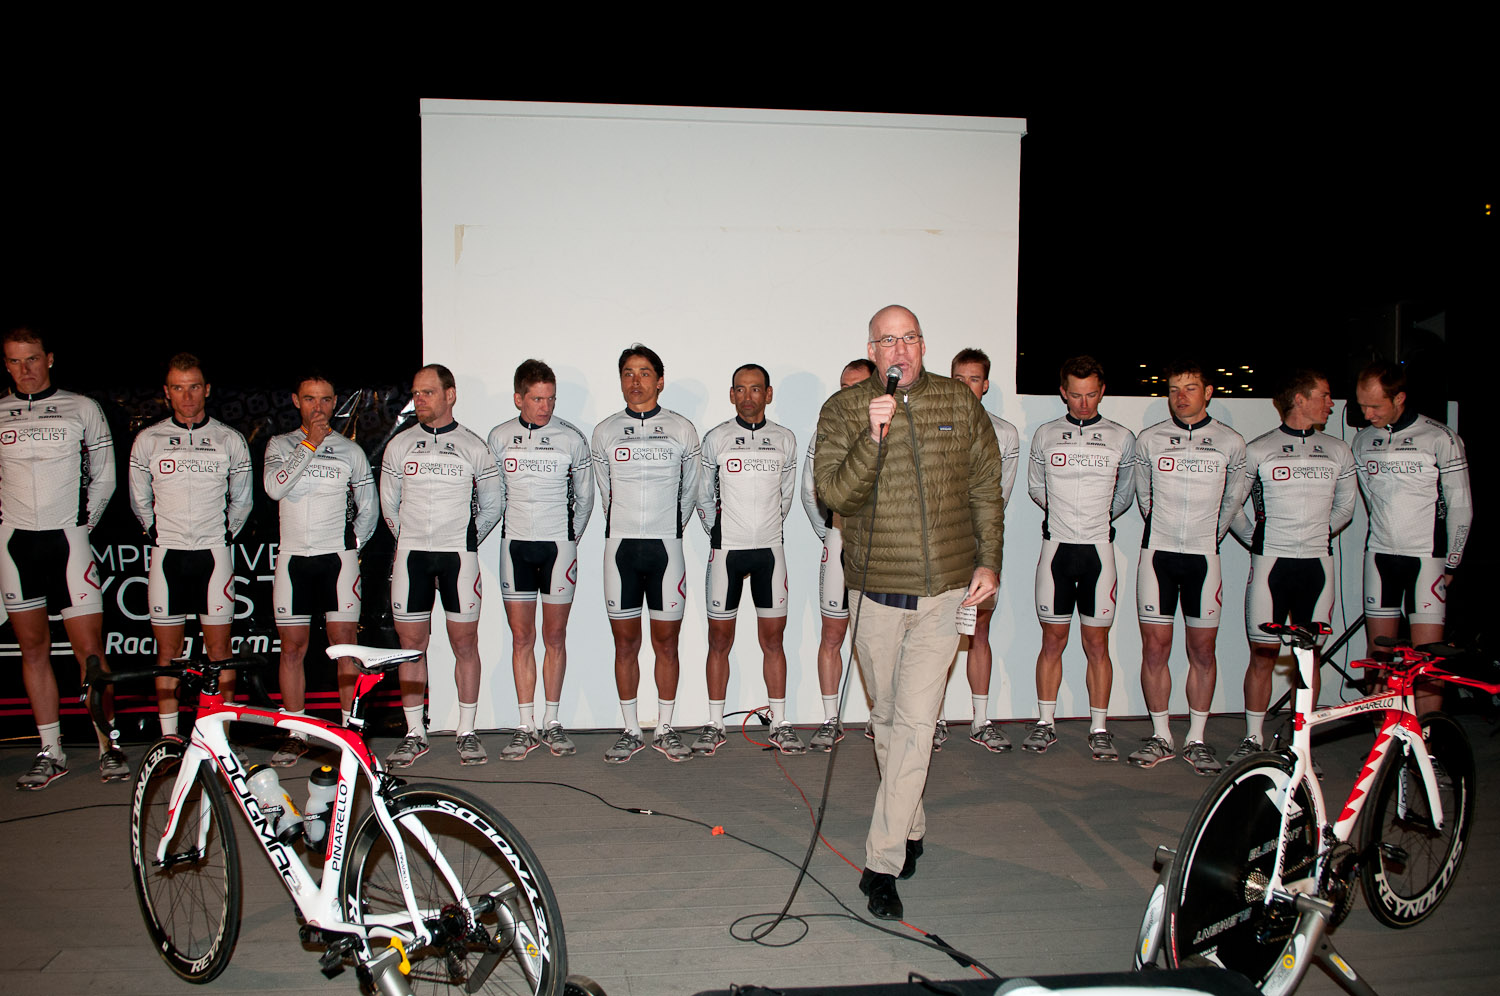 Official Competitive Cyclist Racing Team presentation in downtown Tucson. 